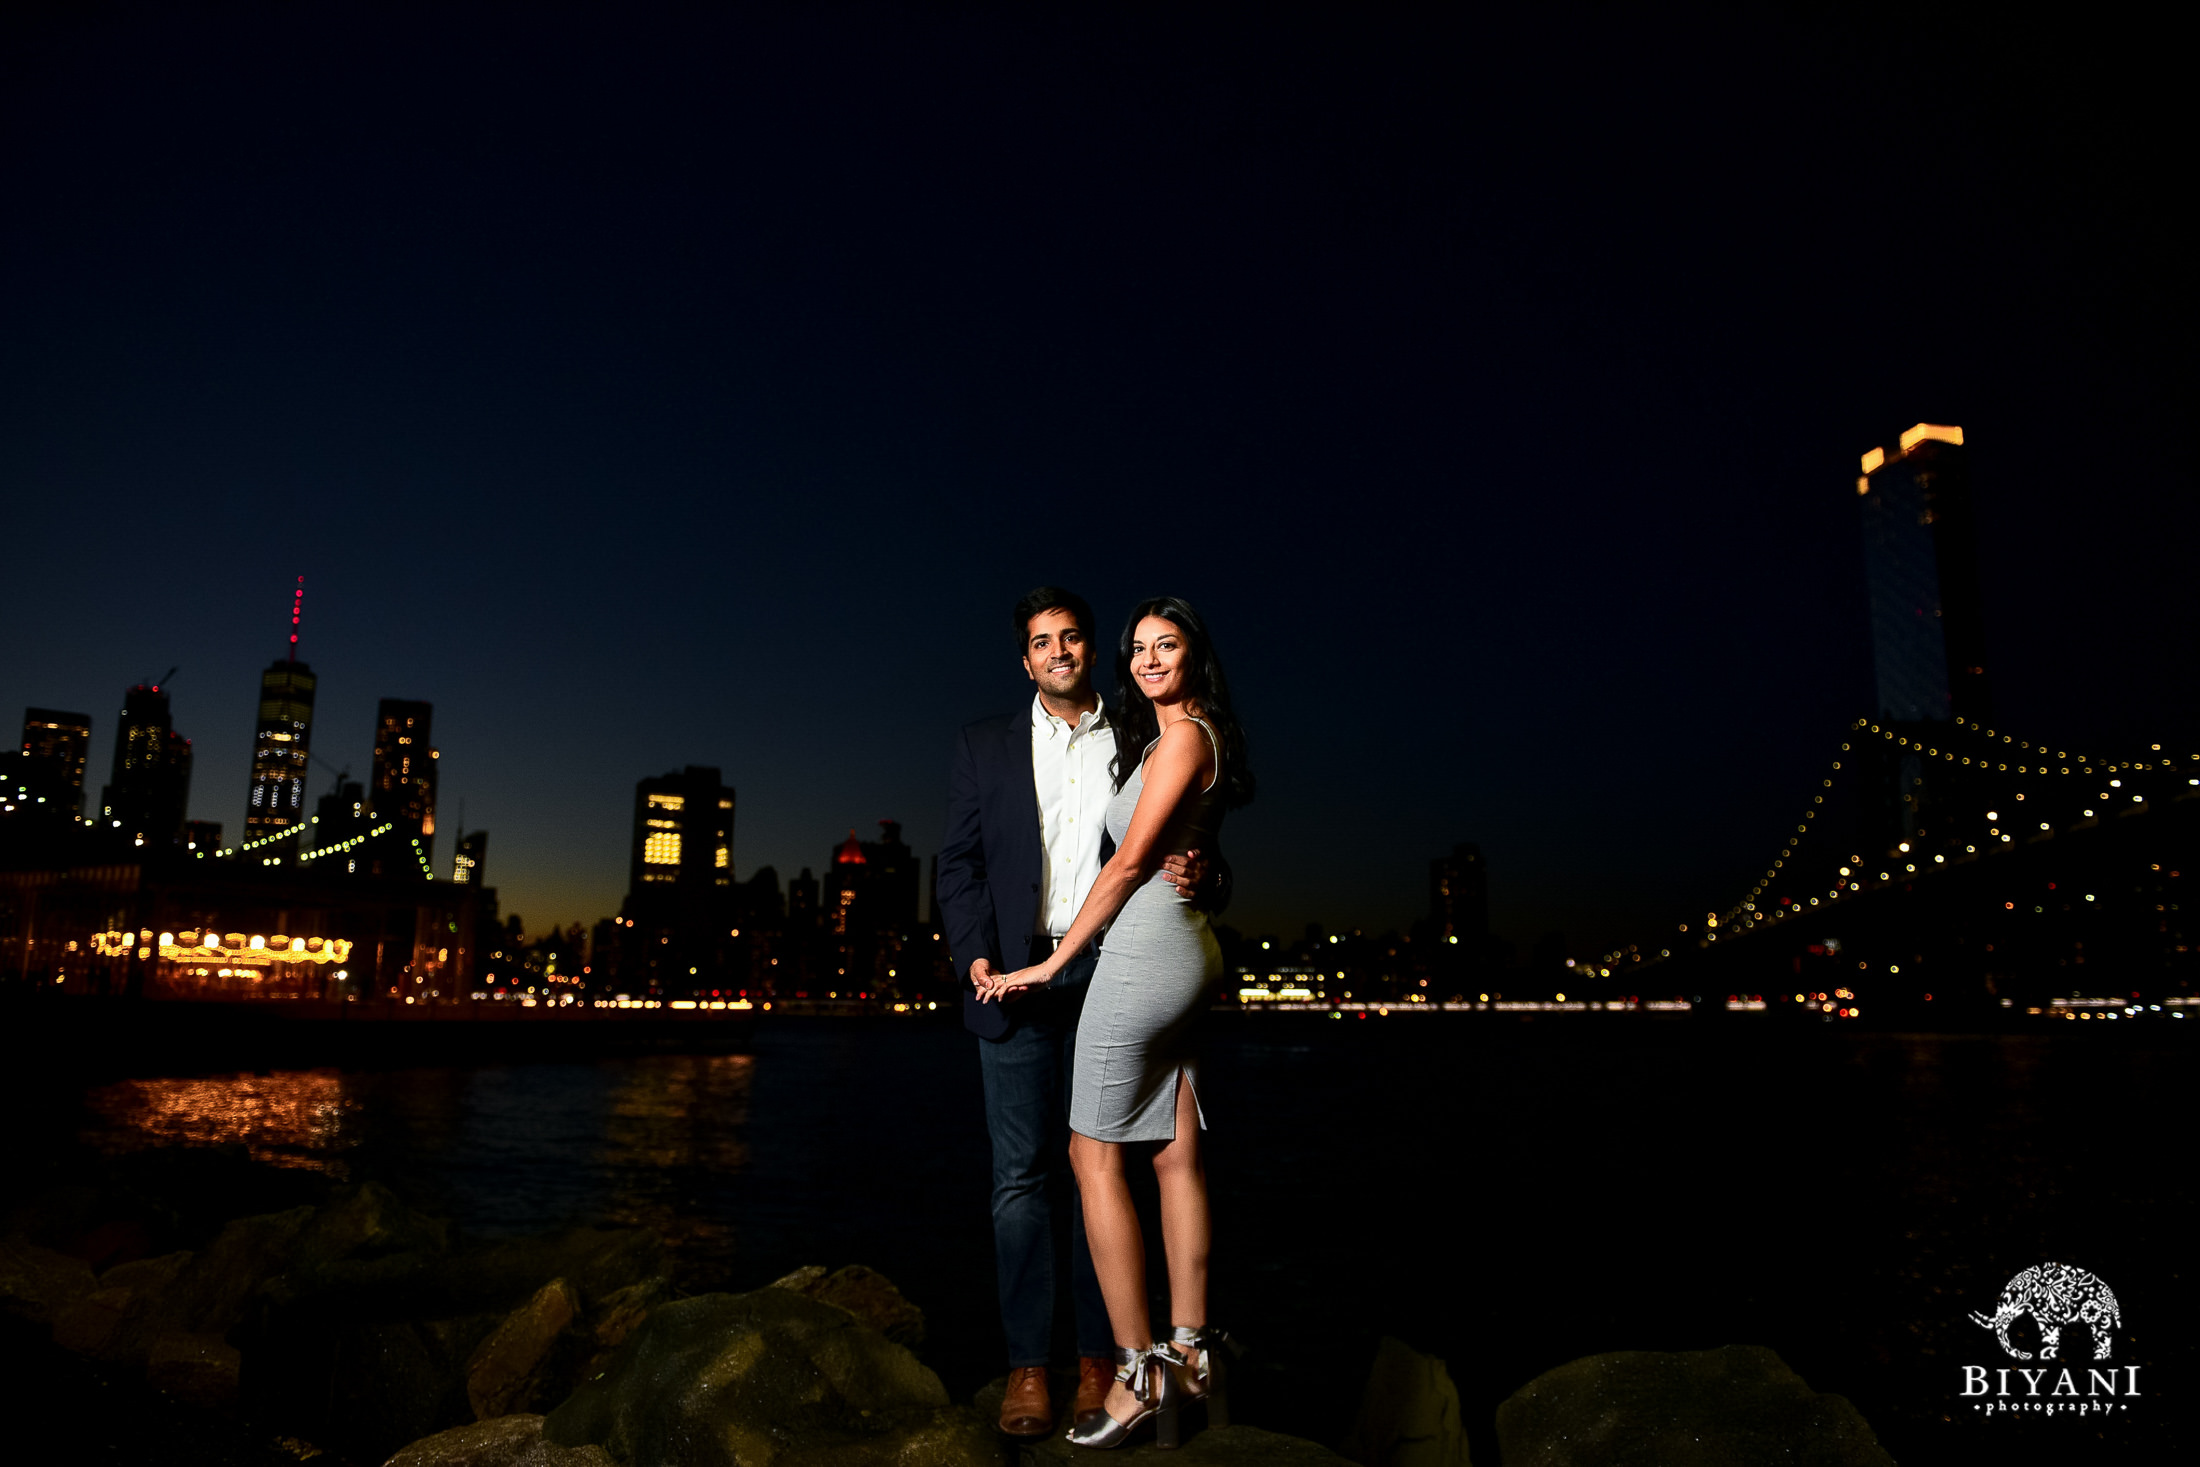 couple standing on rocks in front of New York city Skyline at night with city lights shining behind them